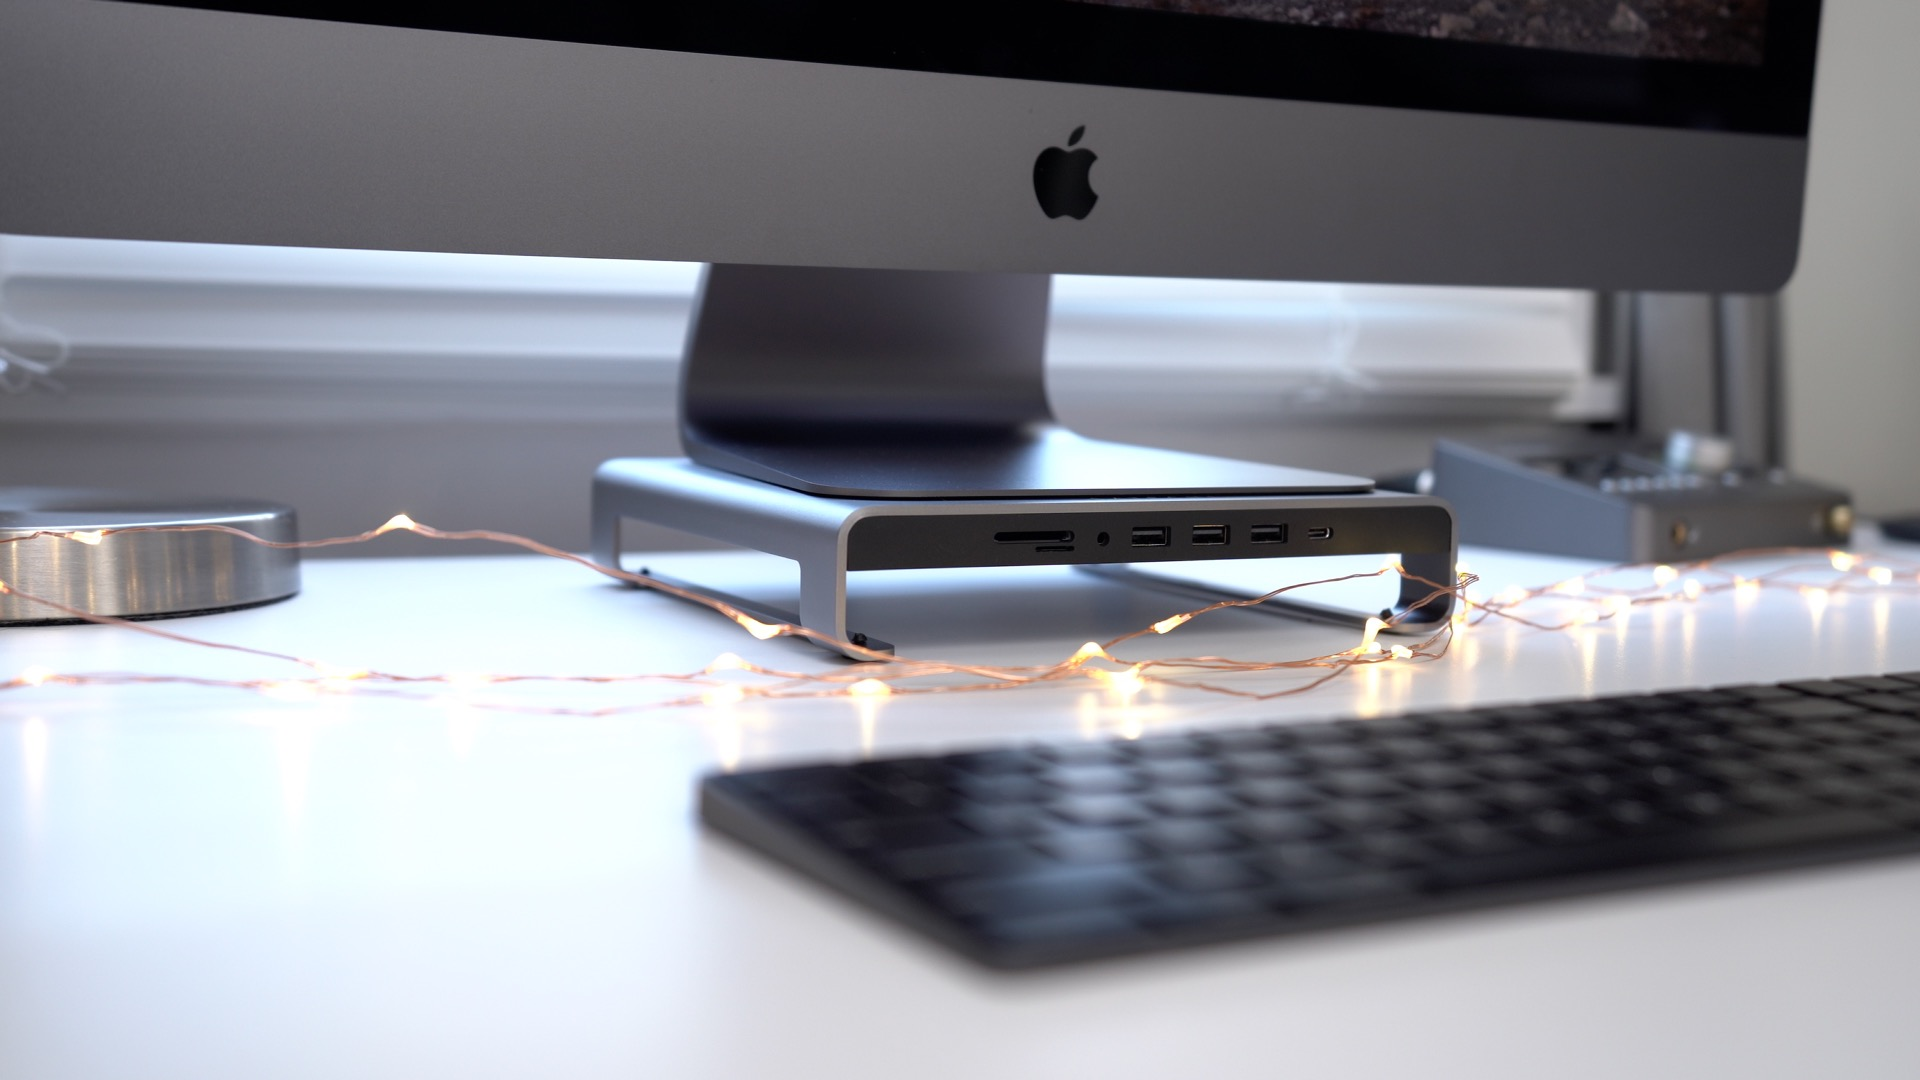 Satechi Aluminum Stand Hub for iMac